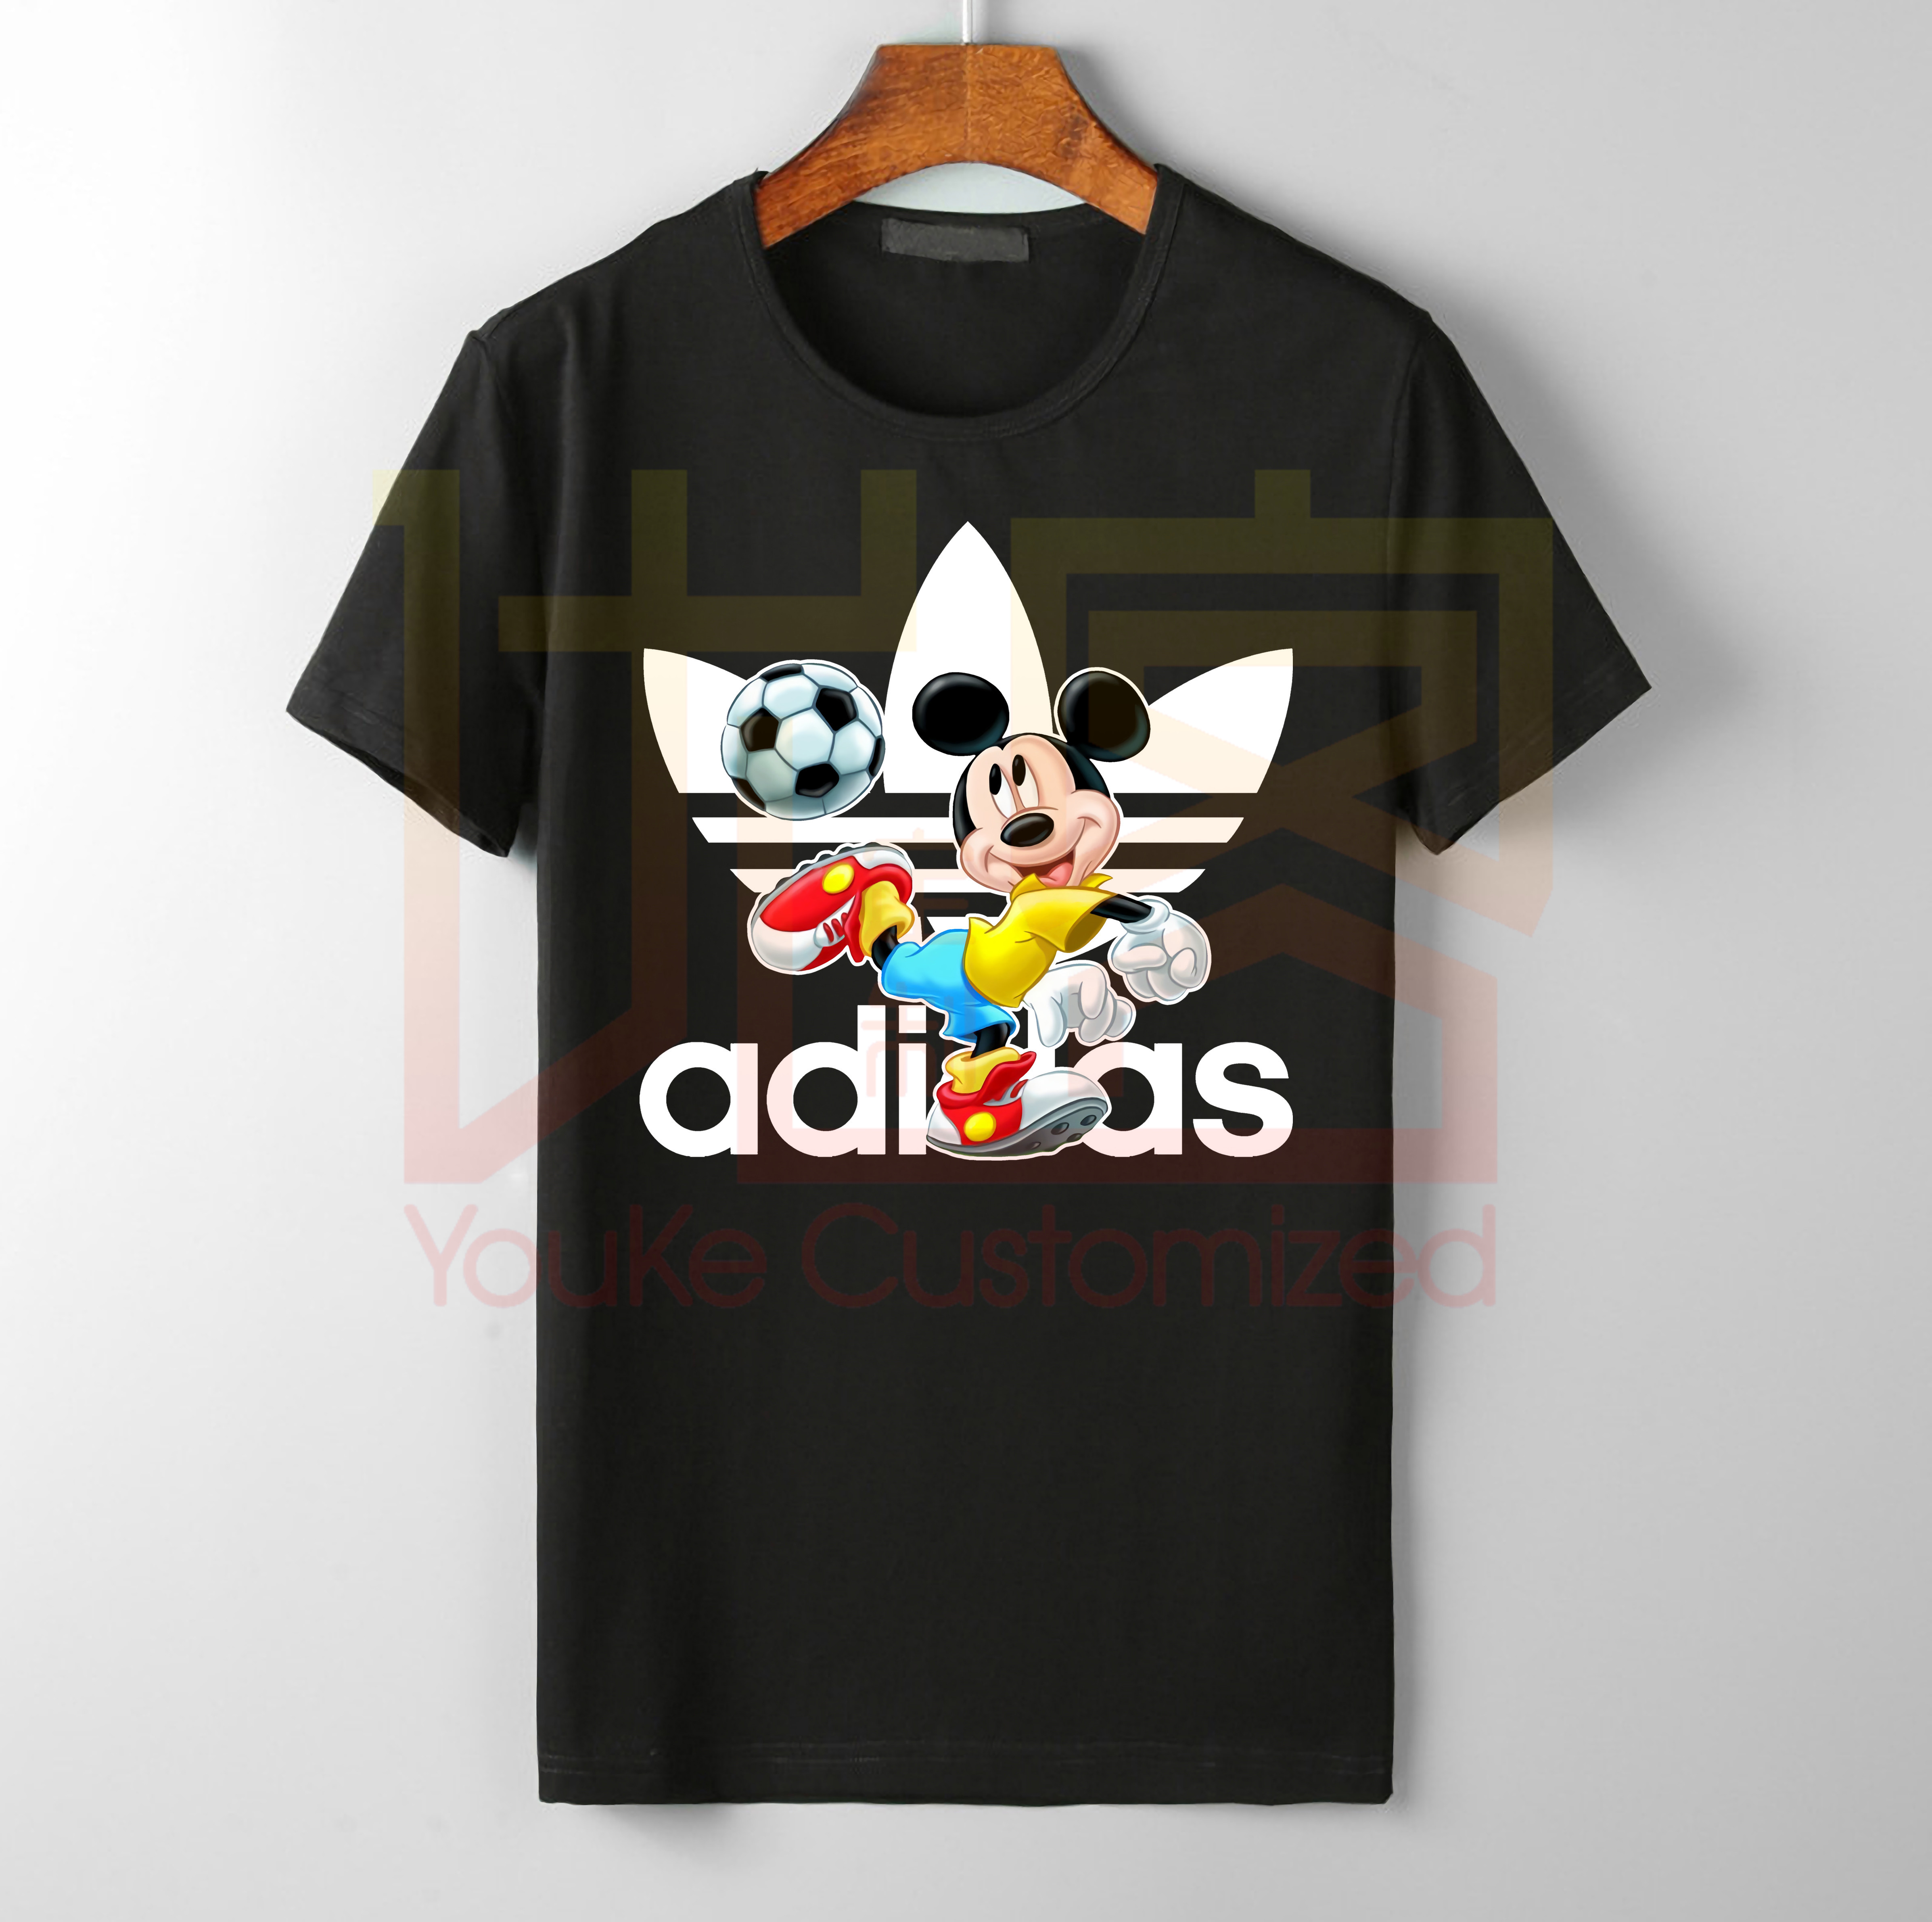 2019 new Bugs Lola Bunny Football Mickey  Disn Sports Logo addidas T-Shirts Handsome Mickey print for men's cool Funny Mickey Tshirt